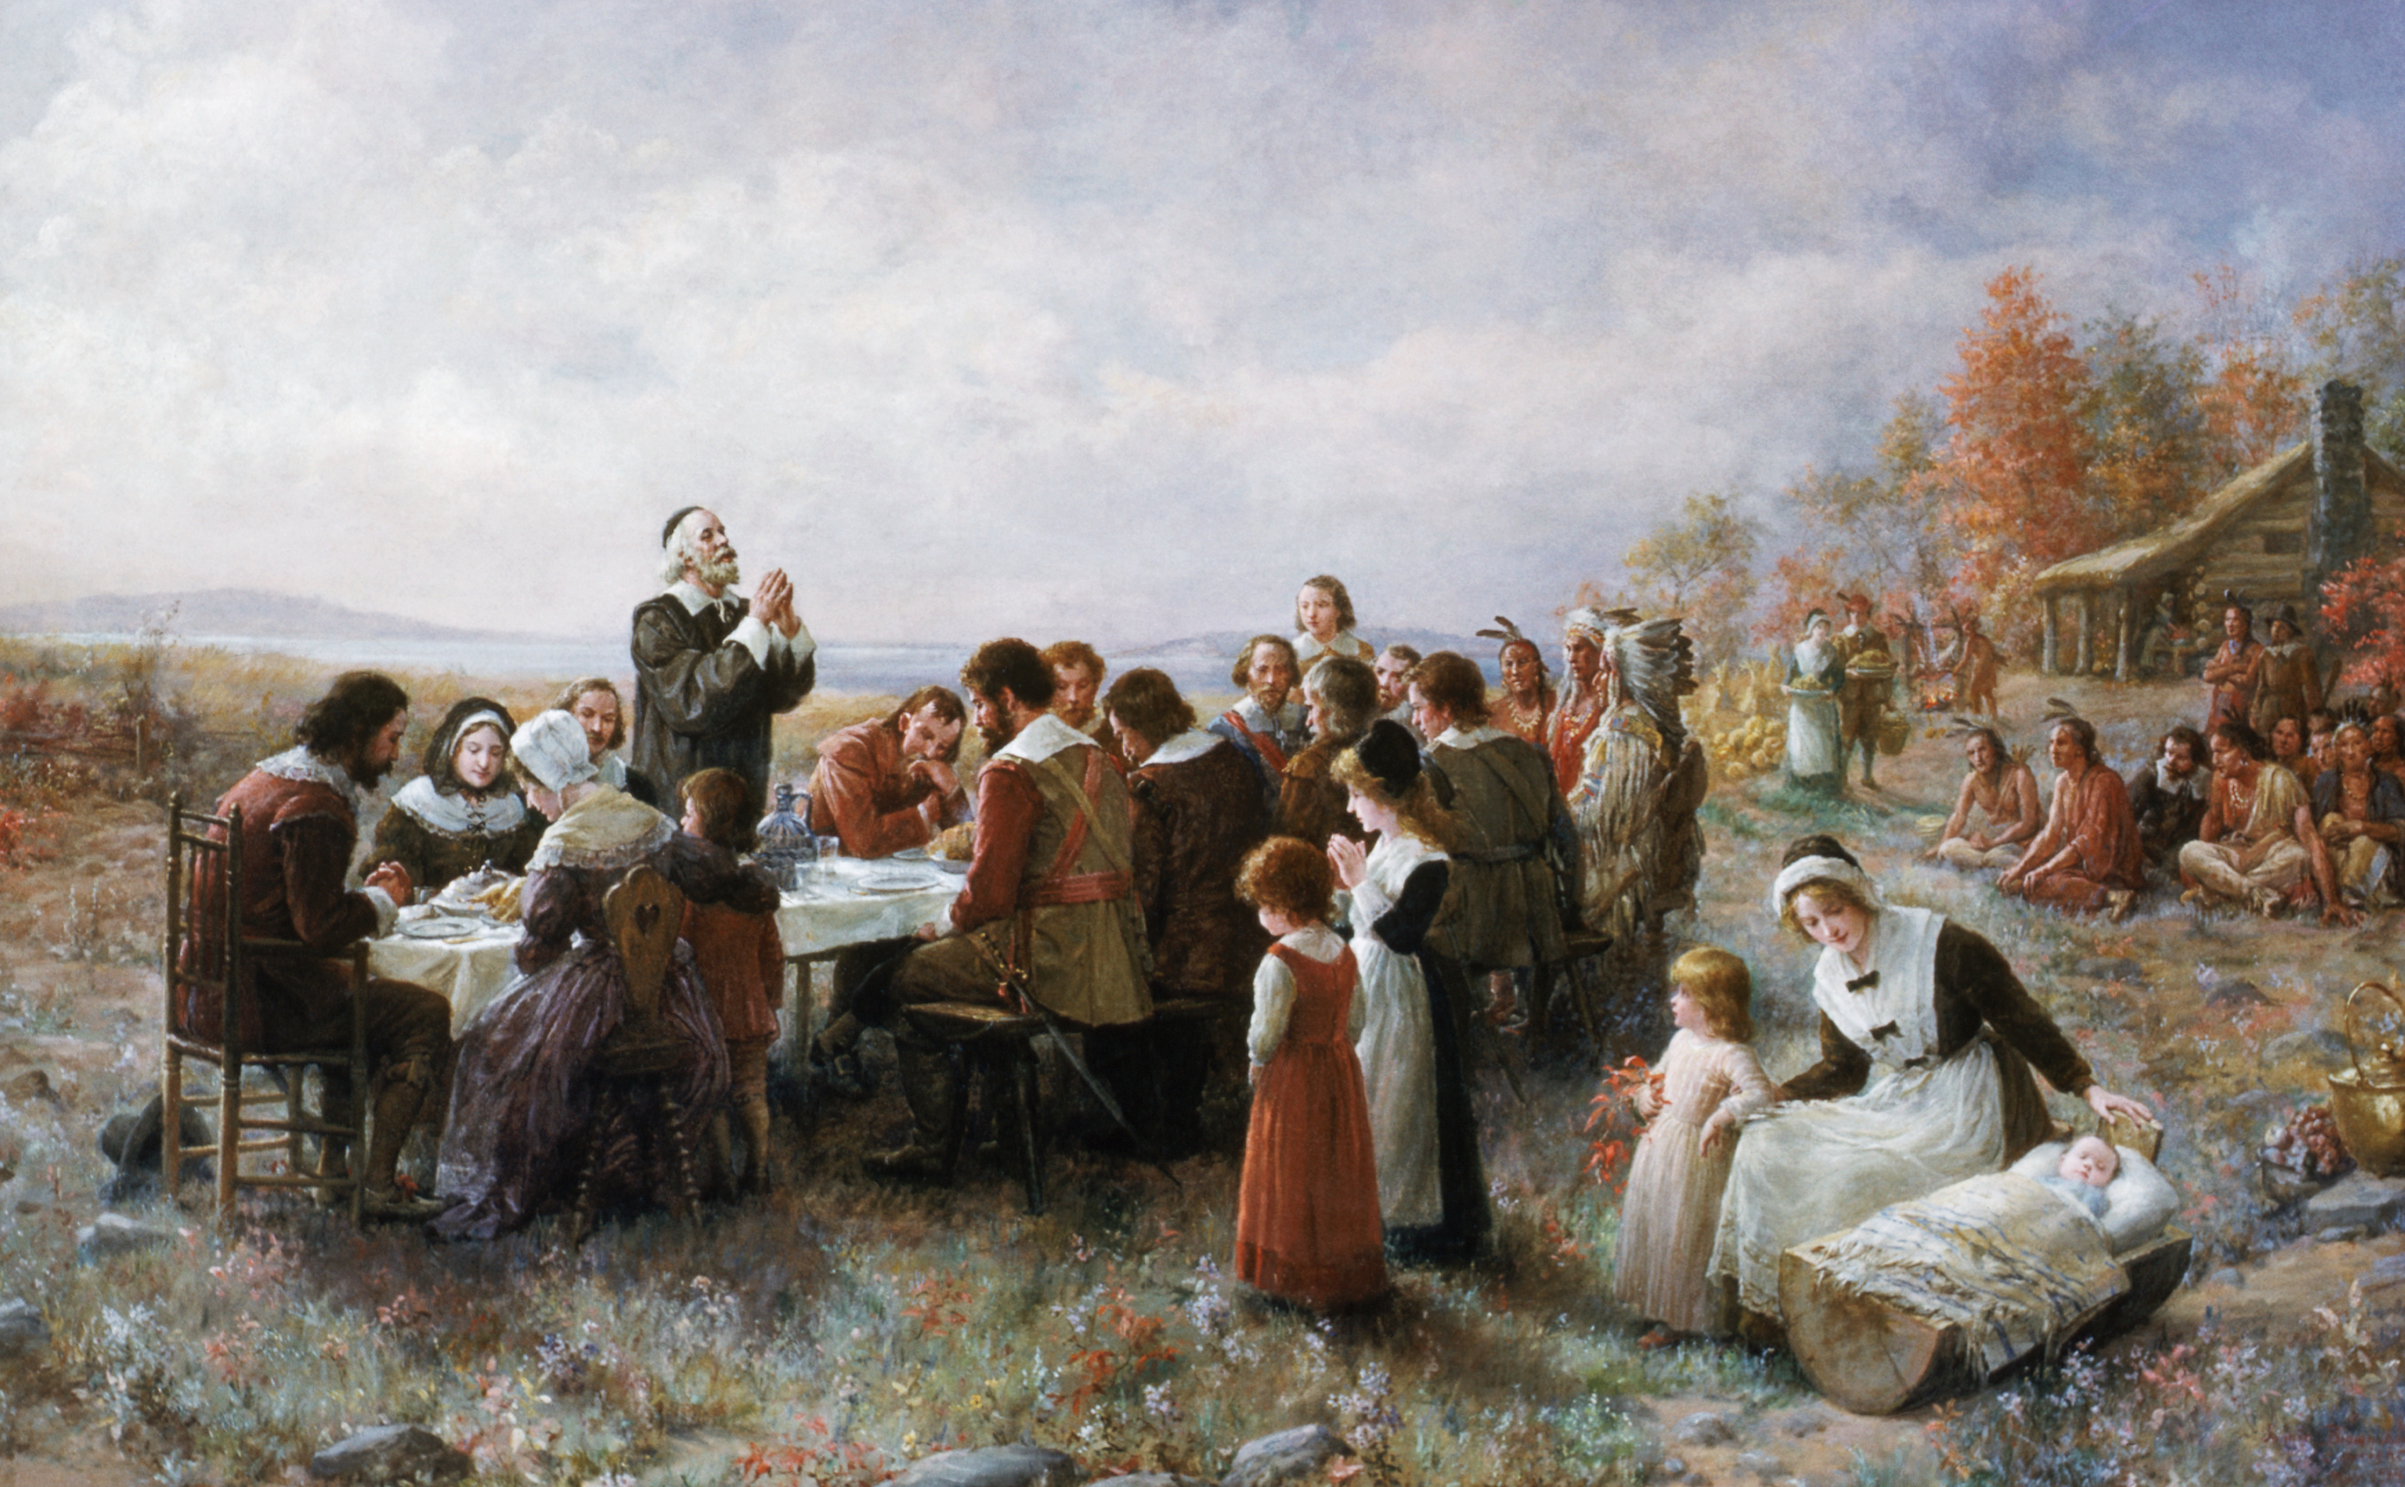 'The First Thanksgiving' by Jennie Augusta Brownscombe, an example of the kind of vision of Thanksgiving that spread in the 19th century